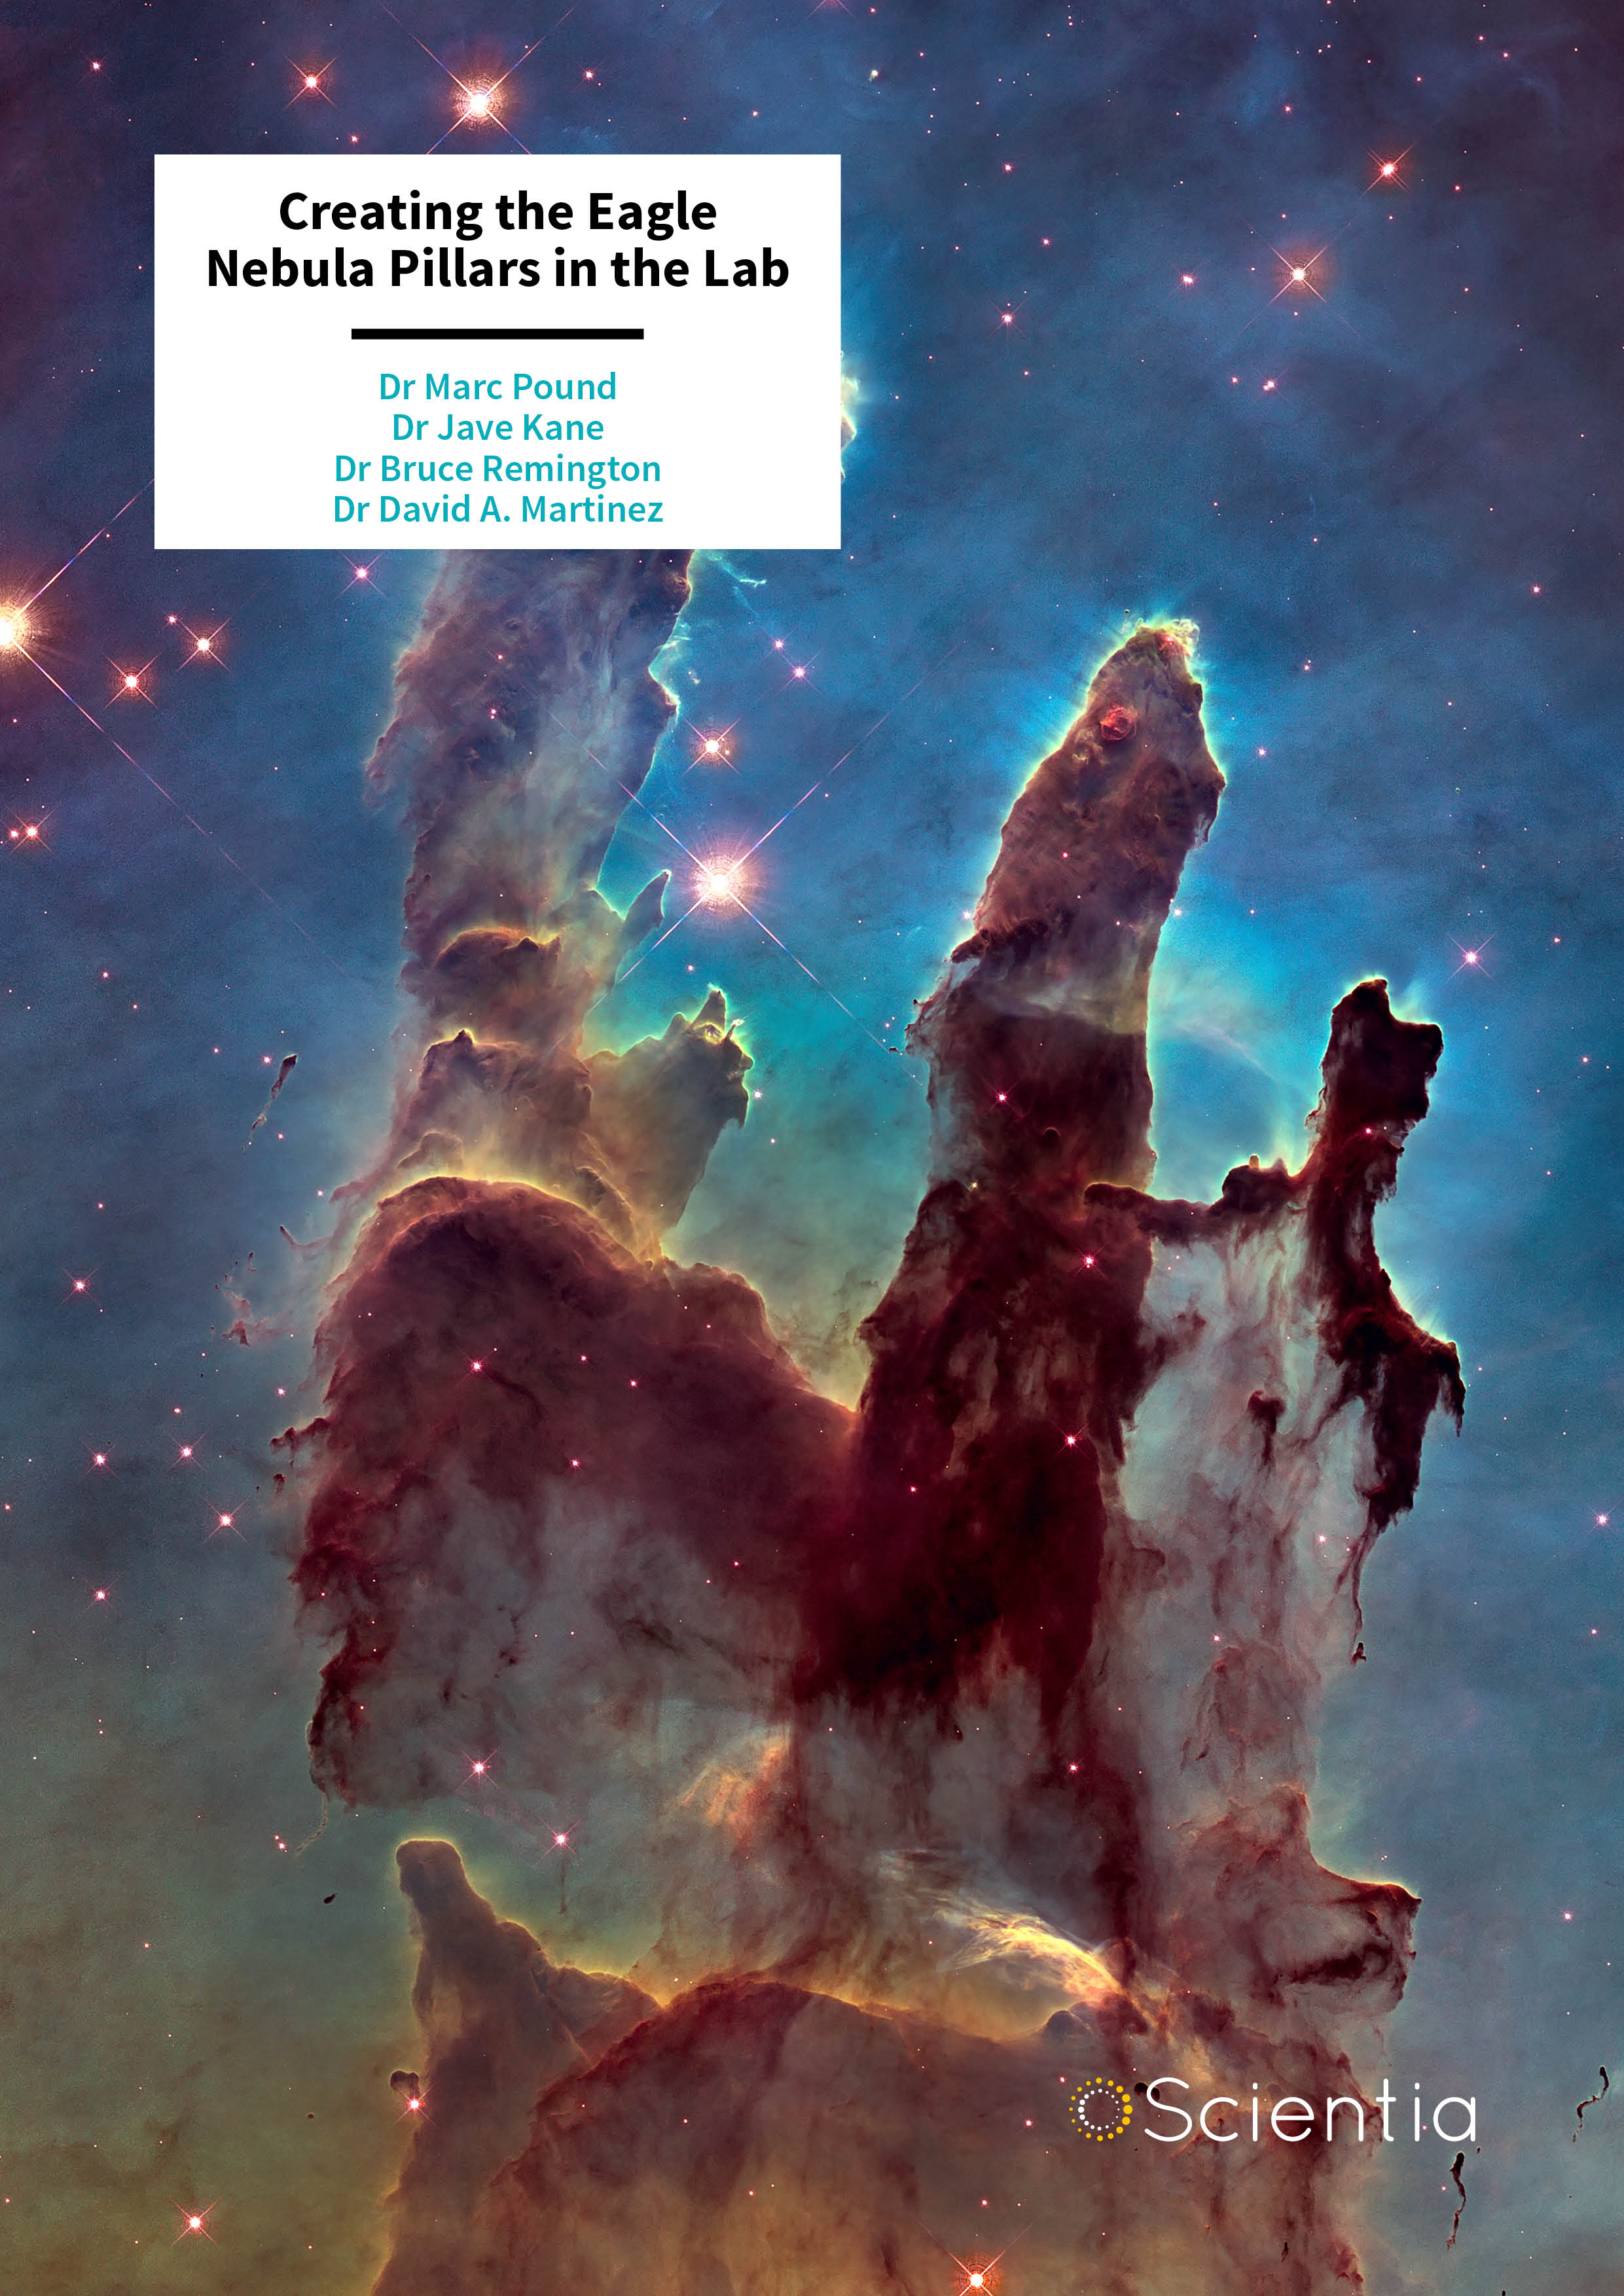 Pound | Kane | Martinez | Remington – Creating the Eagle Nebula Pillars in the Lab